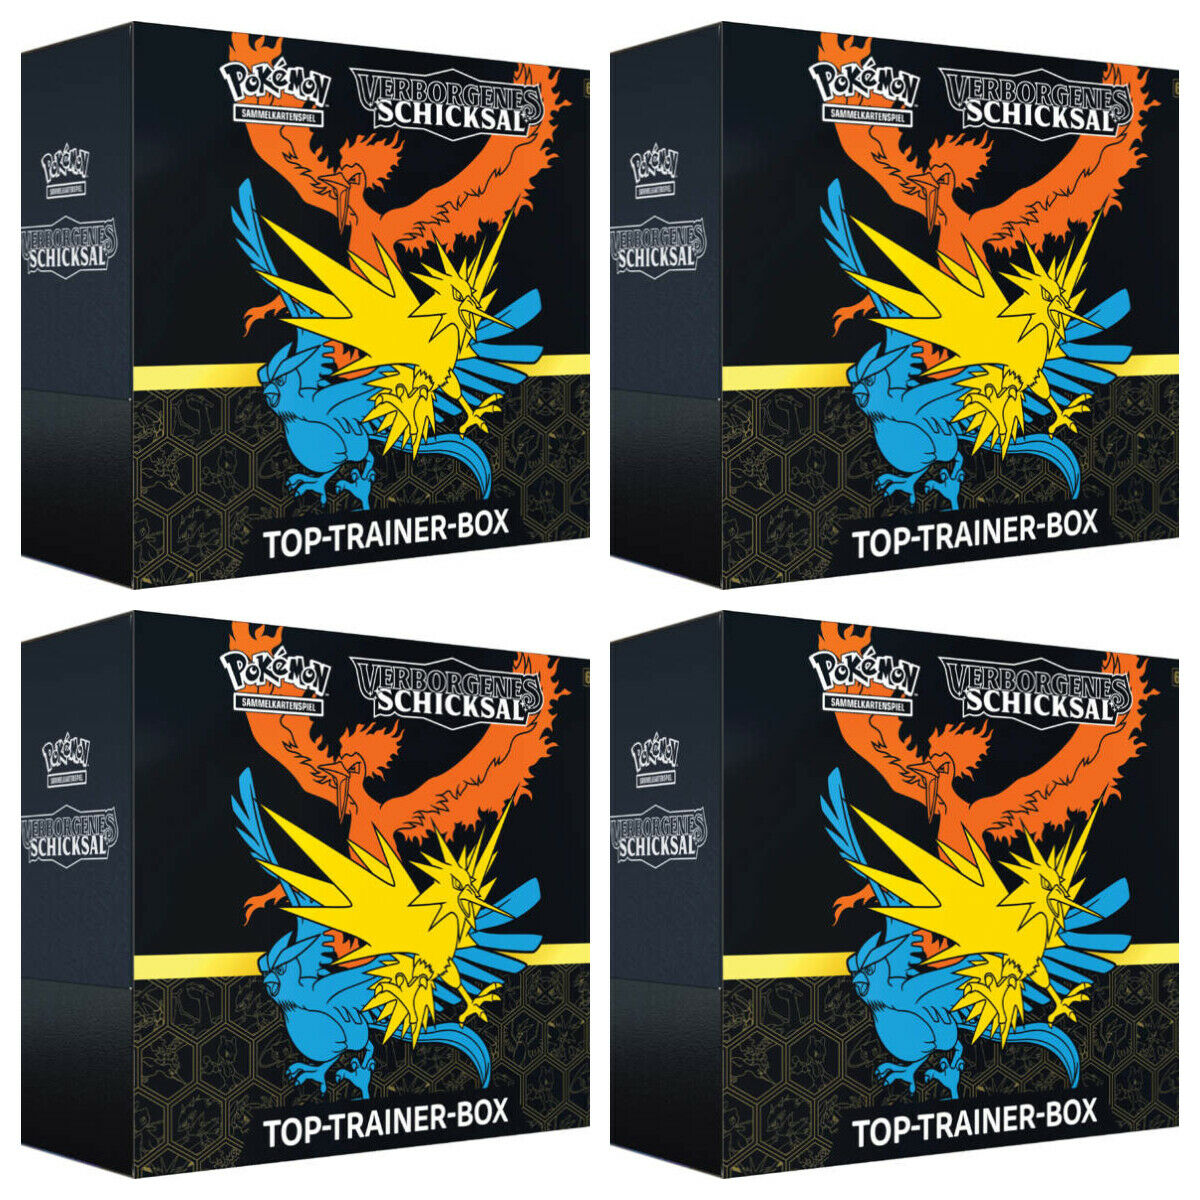 Pokemon Verborgenes Schicksal Top Trainer Box 4x